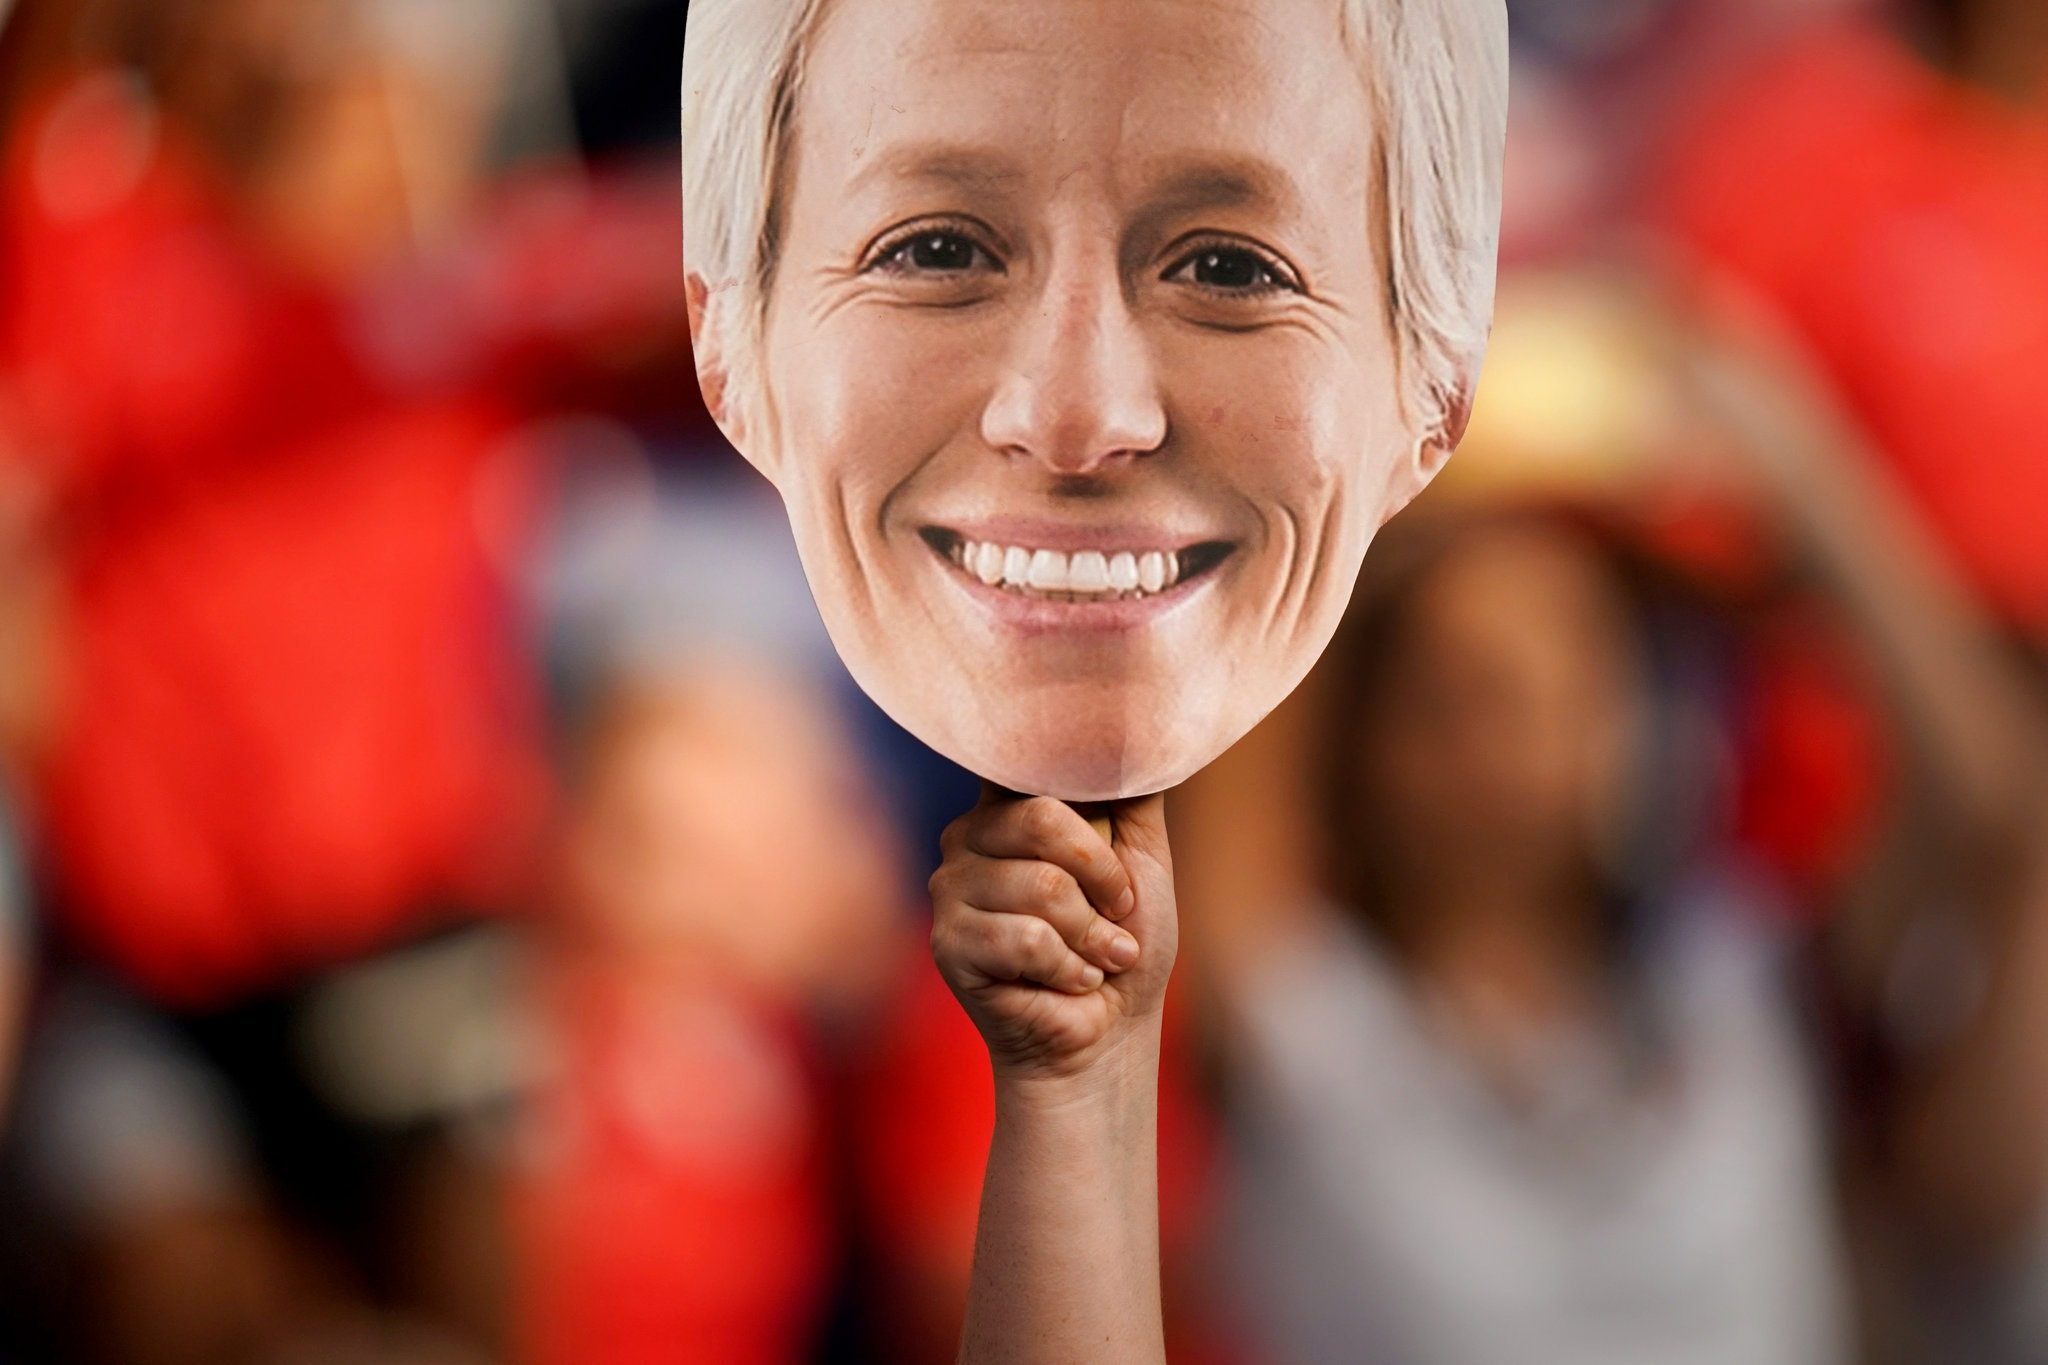 Megan Rapinoe's outspoken nature has made her a favorite of fans who follow the United States women's soccer team.CreditCreditLionel Bonaventure/Agence France-Presse — Getty Images  via New York Times